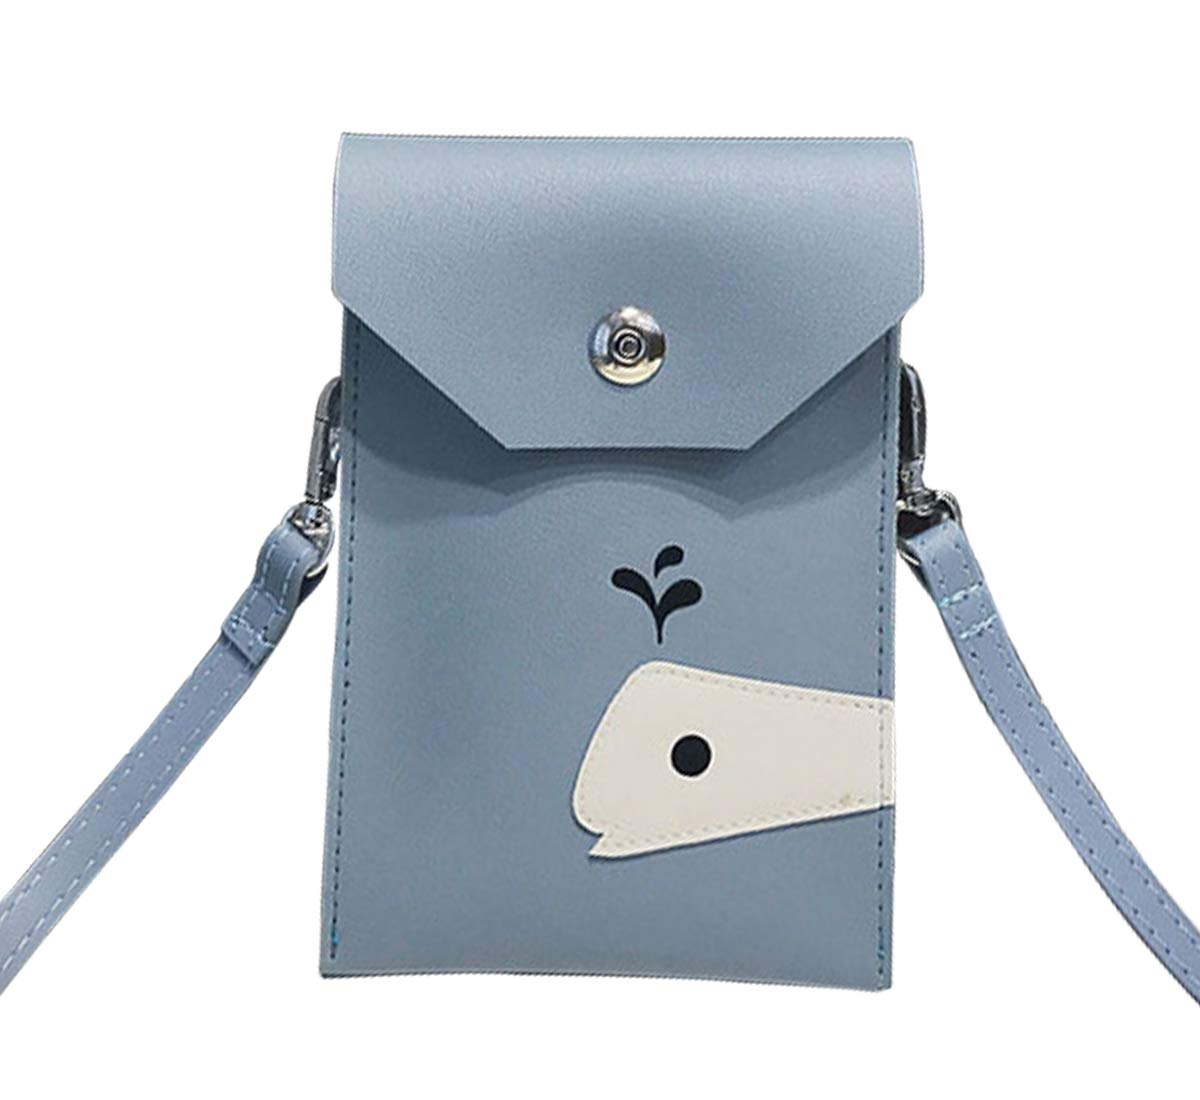 Degohome Roomy Pockets Series Small Crossbody Bag Cute Cartoon Dolphin Cell Phone Purse Wallet For Women(blue)